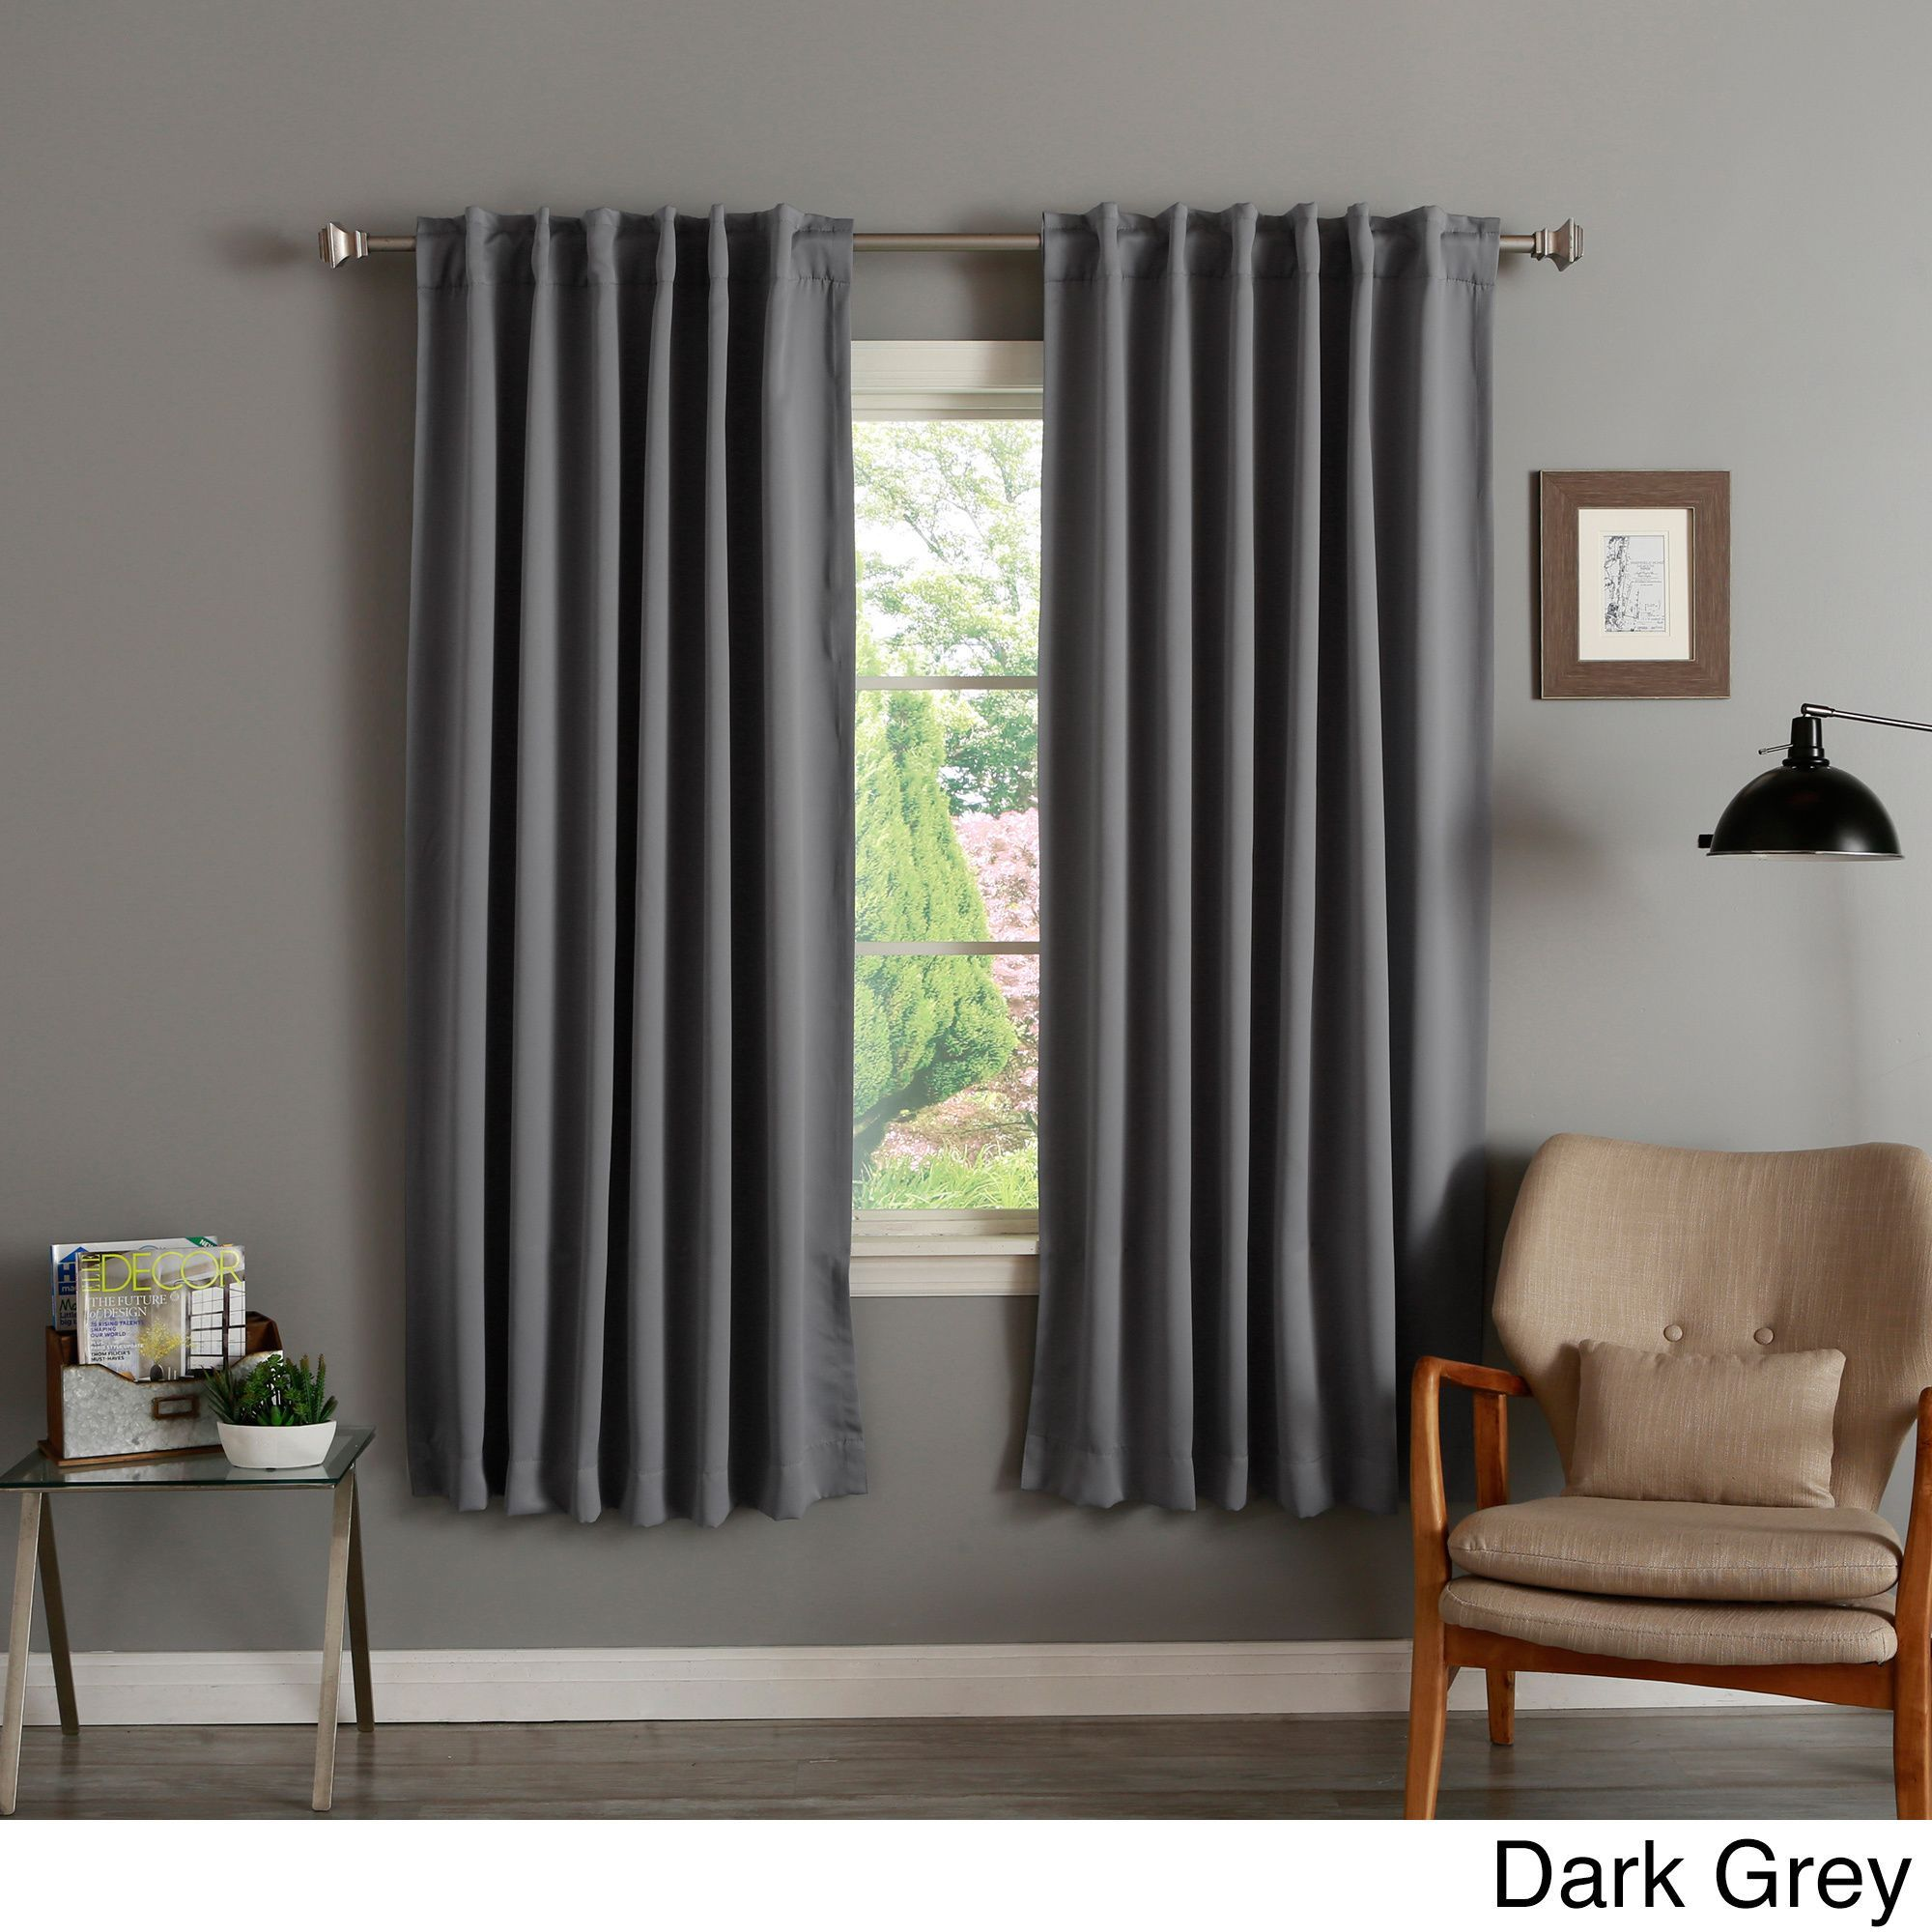 Aurora Home Insulated 72 Inch Thermal Blackout Curtain Panel Pair